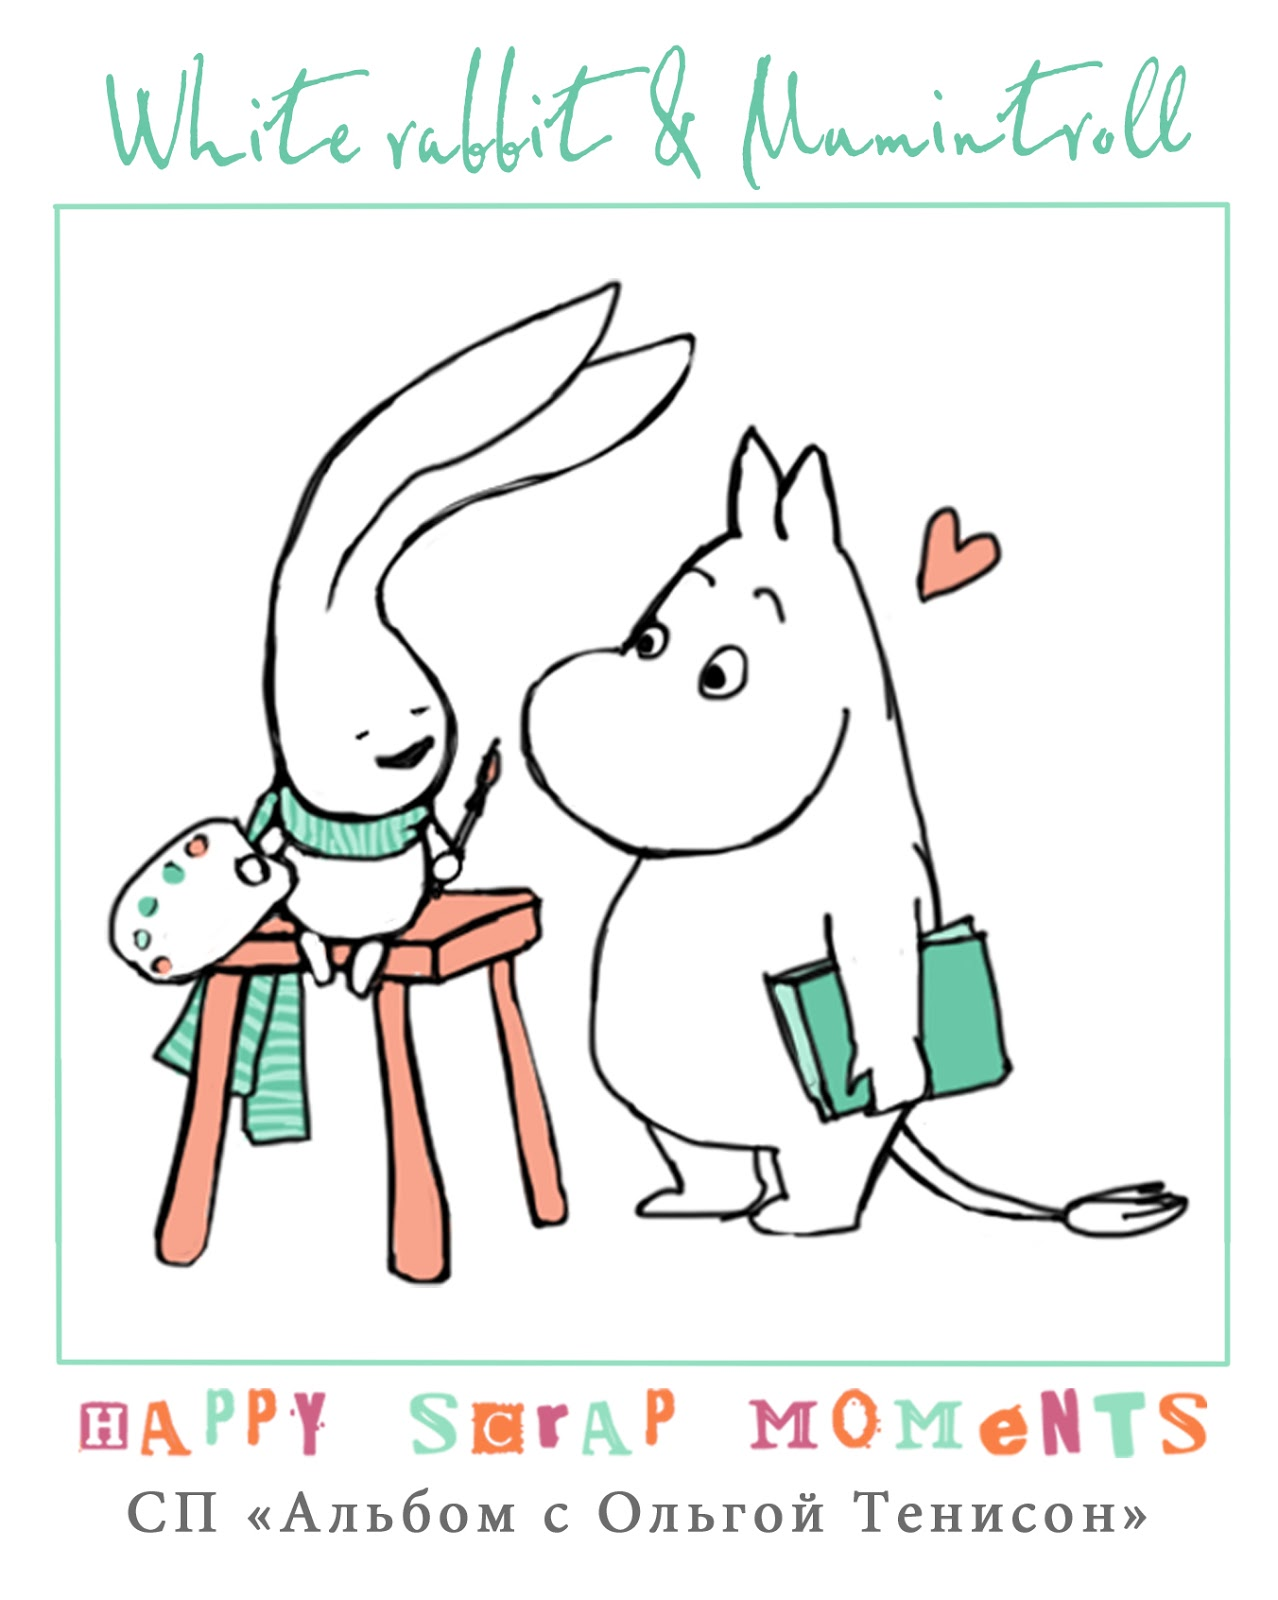 http://happyscrapmoments.blogspot.ru/search/label/%D0%A1%D0%9F%20%D1%81%20%D0%9E%D0%BB%D0%B5%D0%B9%20White%20rabbit